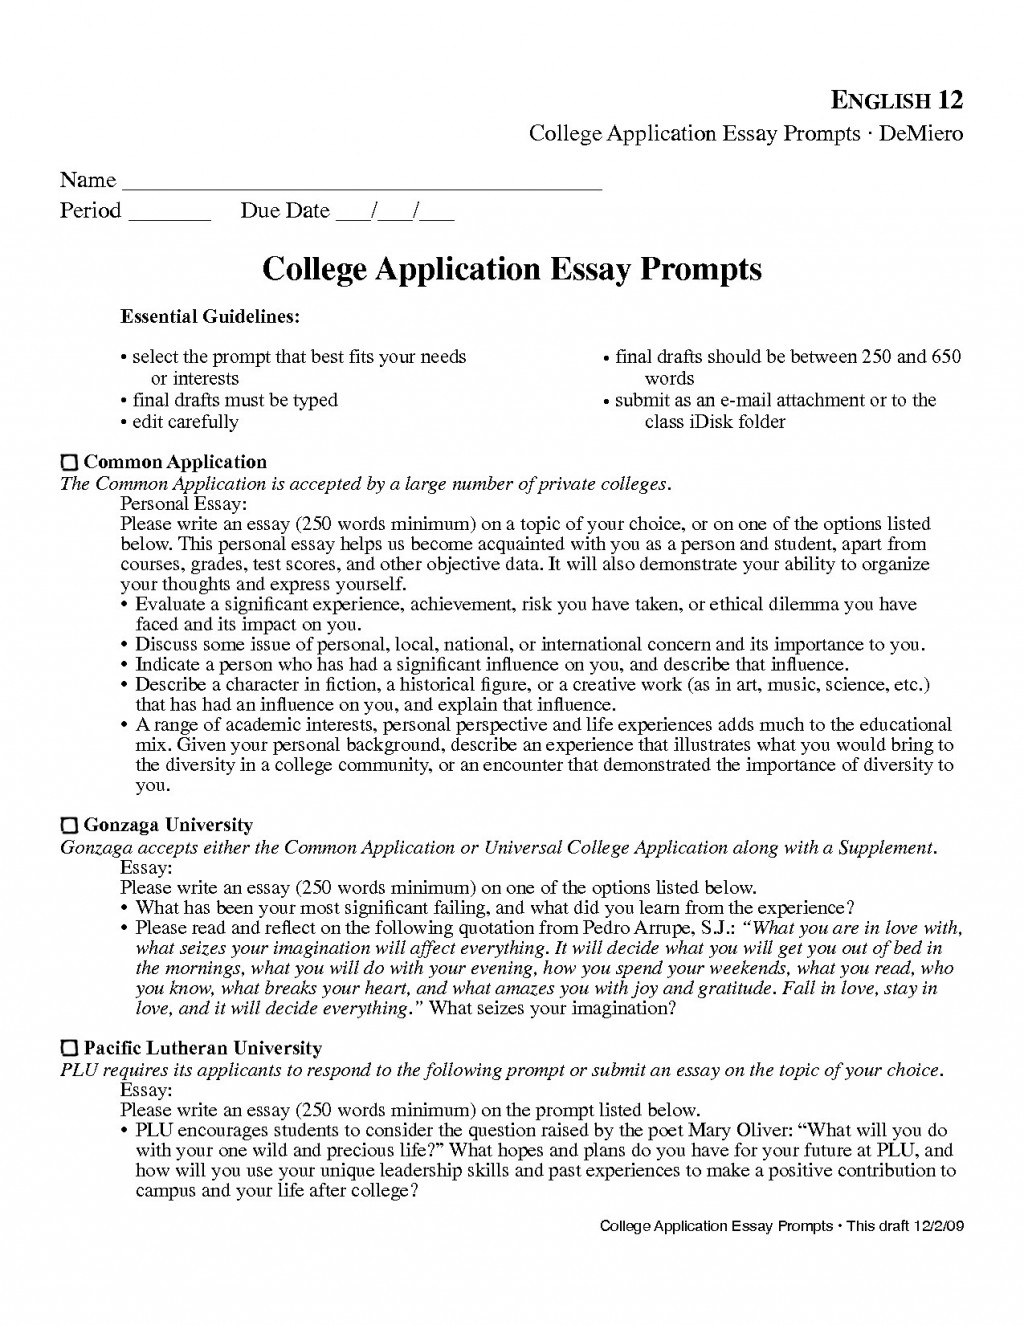 011 College Essays Writings And Topic Samples English Narrative Topics Business Plan Throu Uc Apply Texas Johns Hopkins About Failure Stanford Pdf Sports Reddit Remarkable Essay Prompt Large